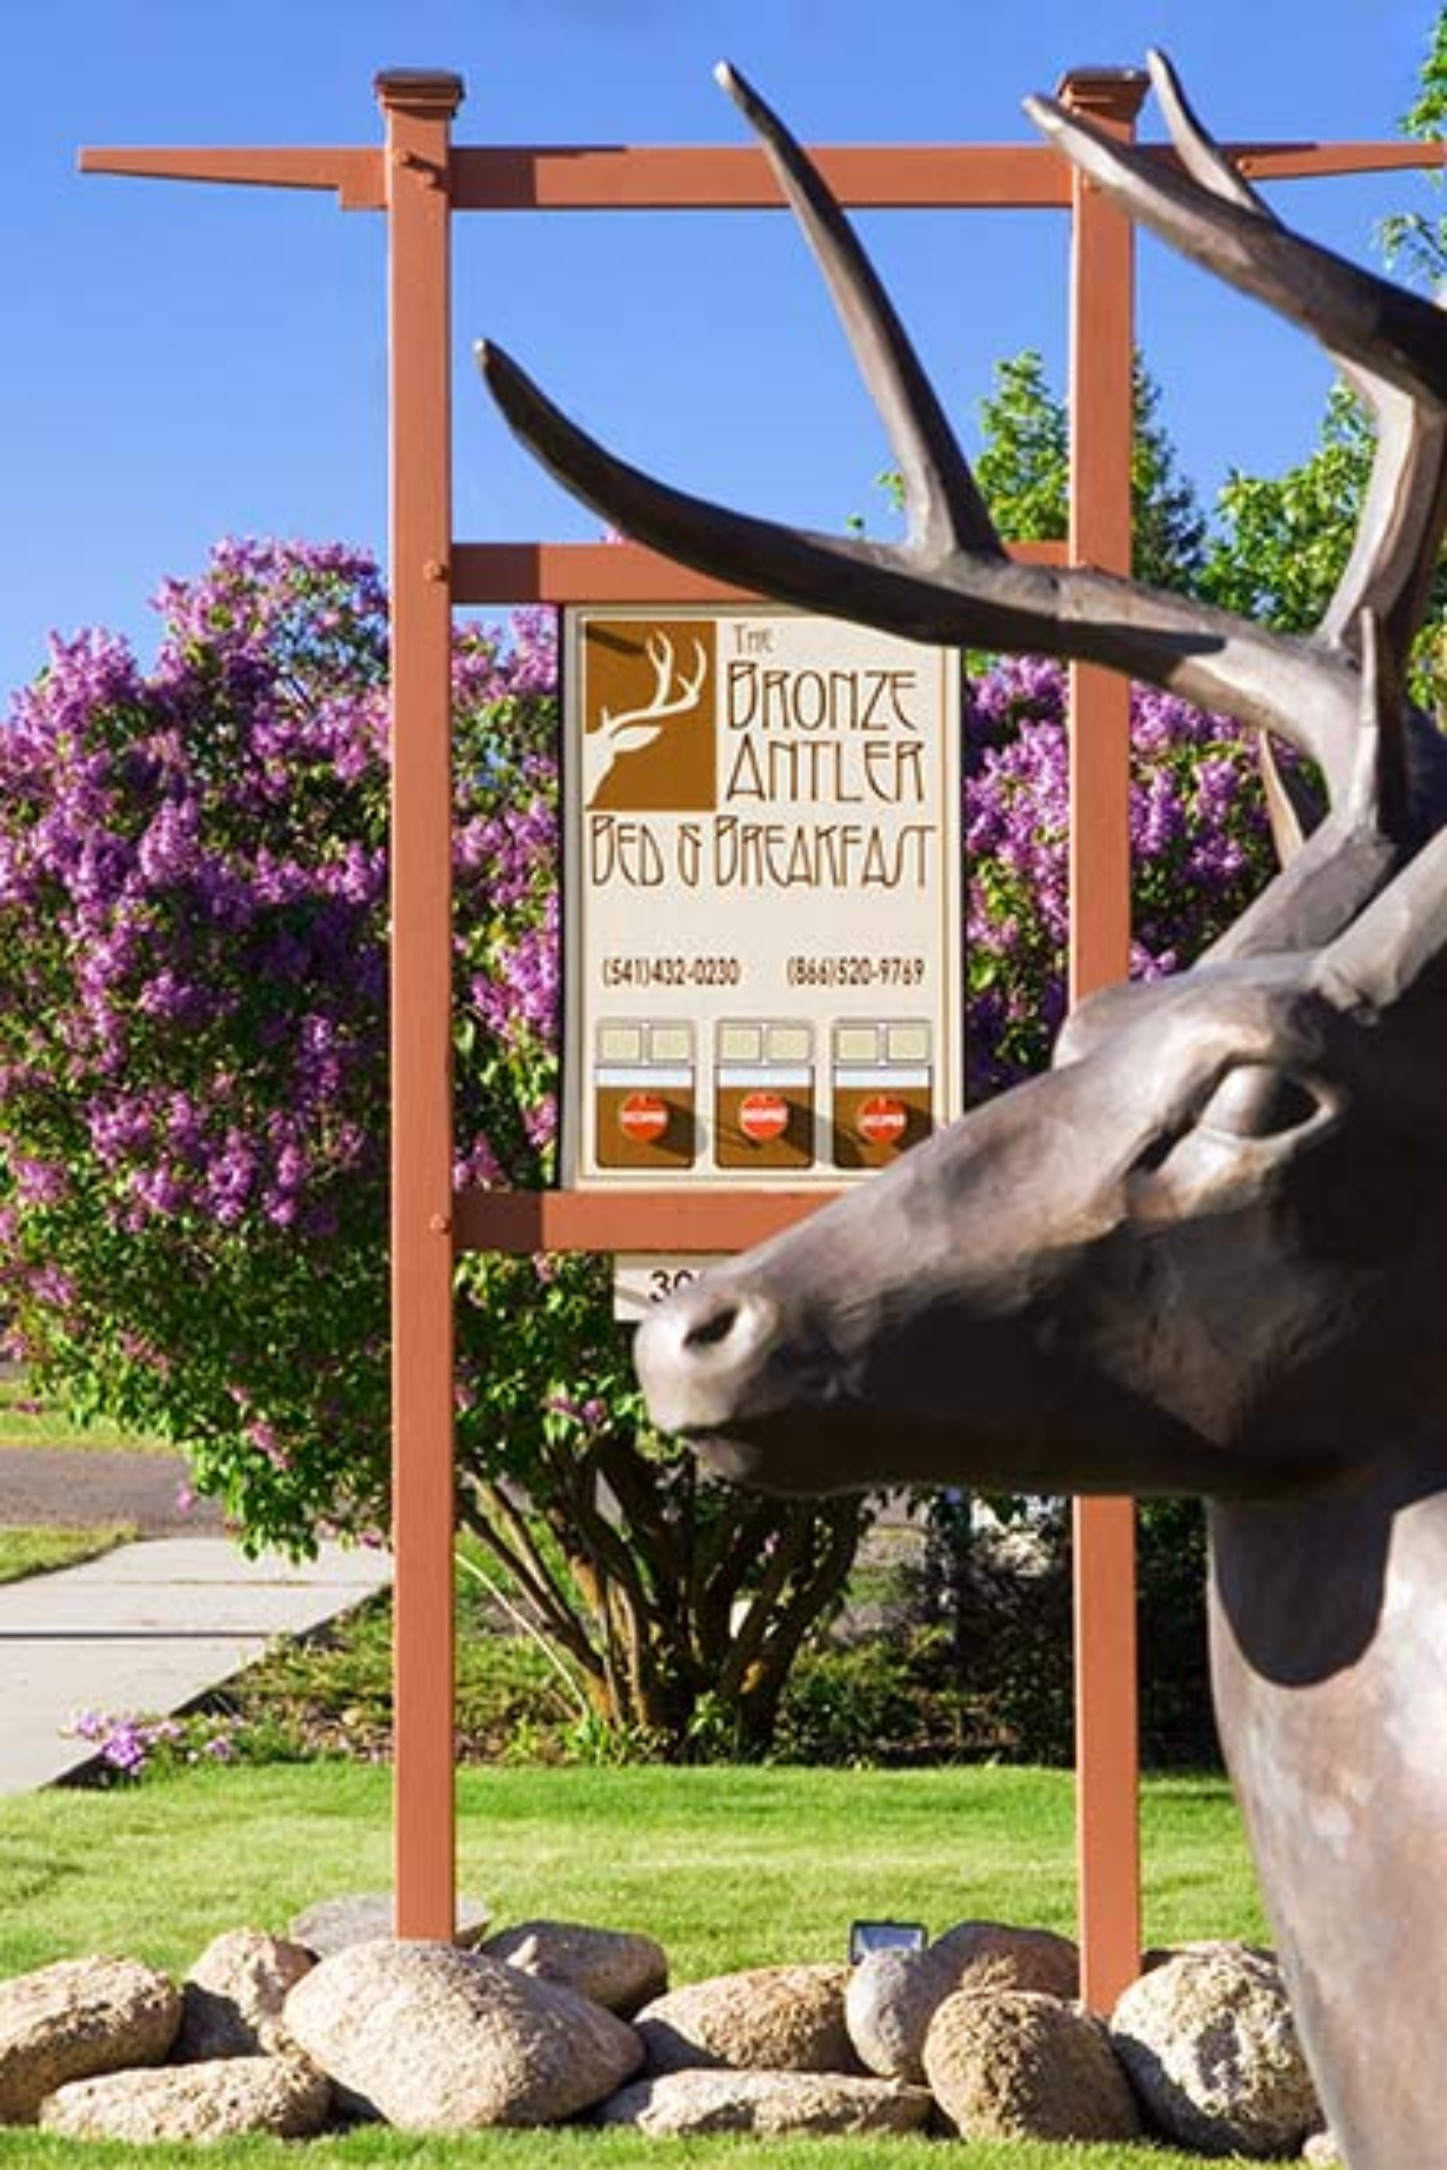 A cow is standing in front of a building at Bronze Antler Bed & Breakfast .